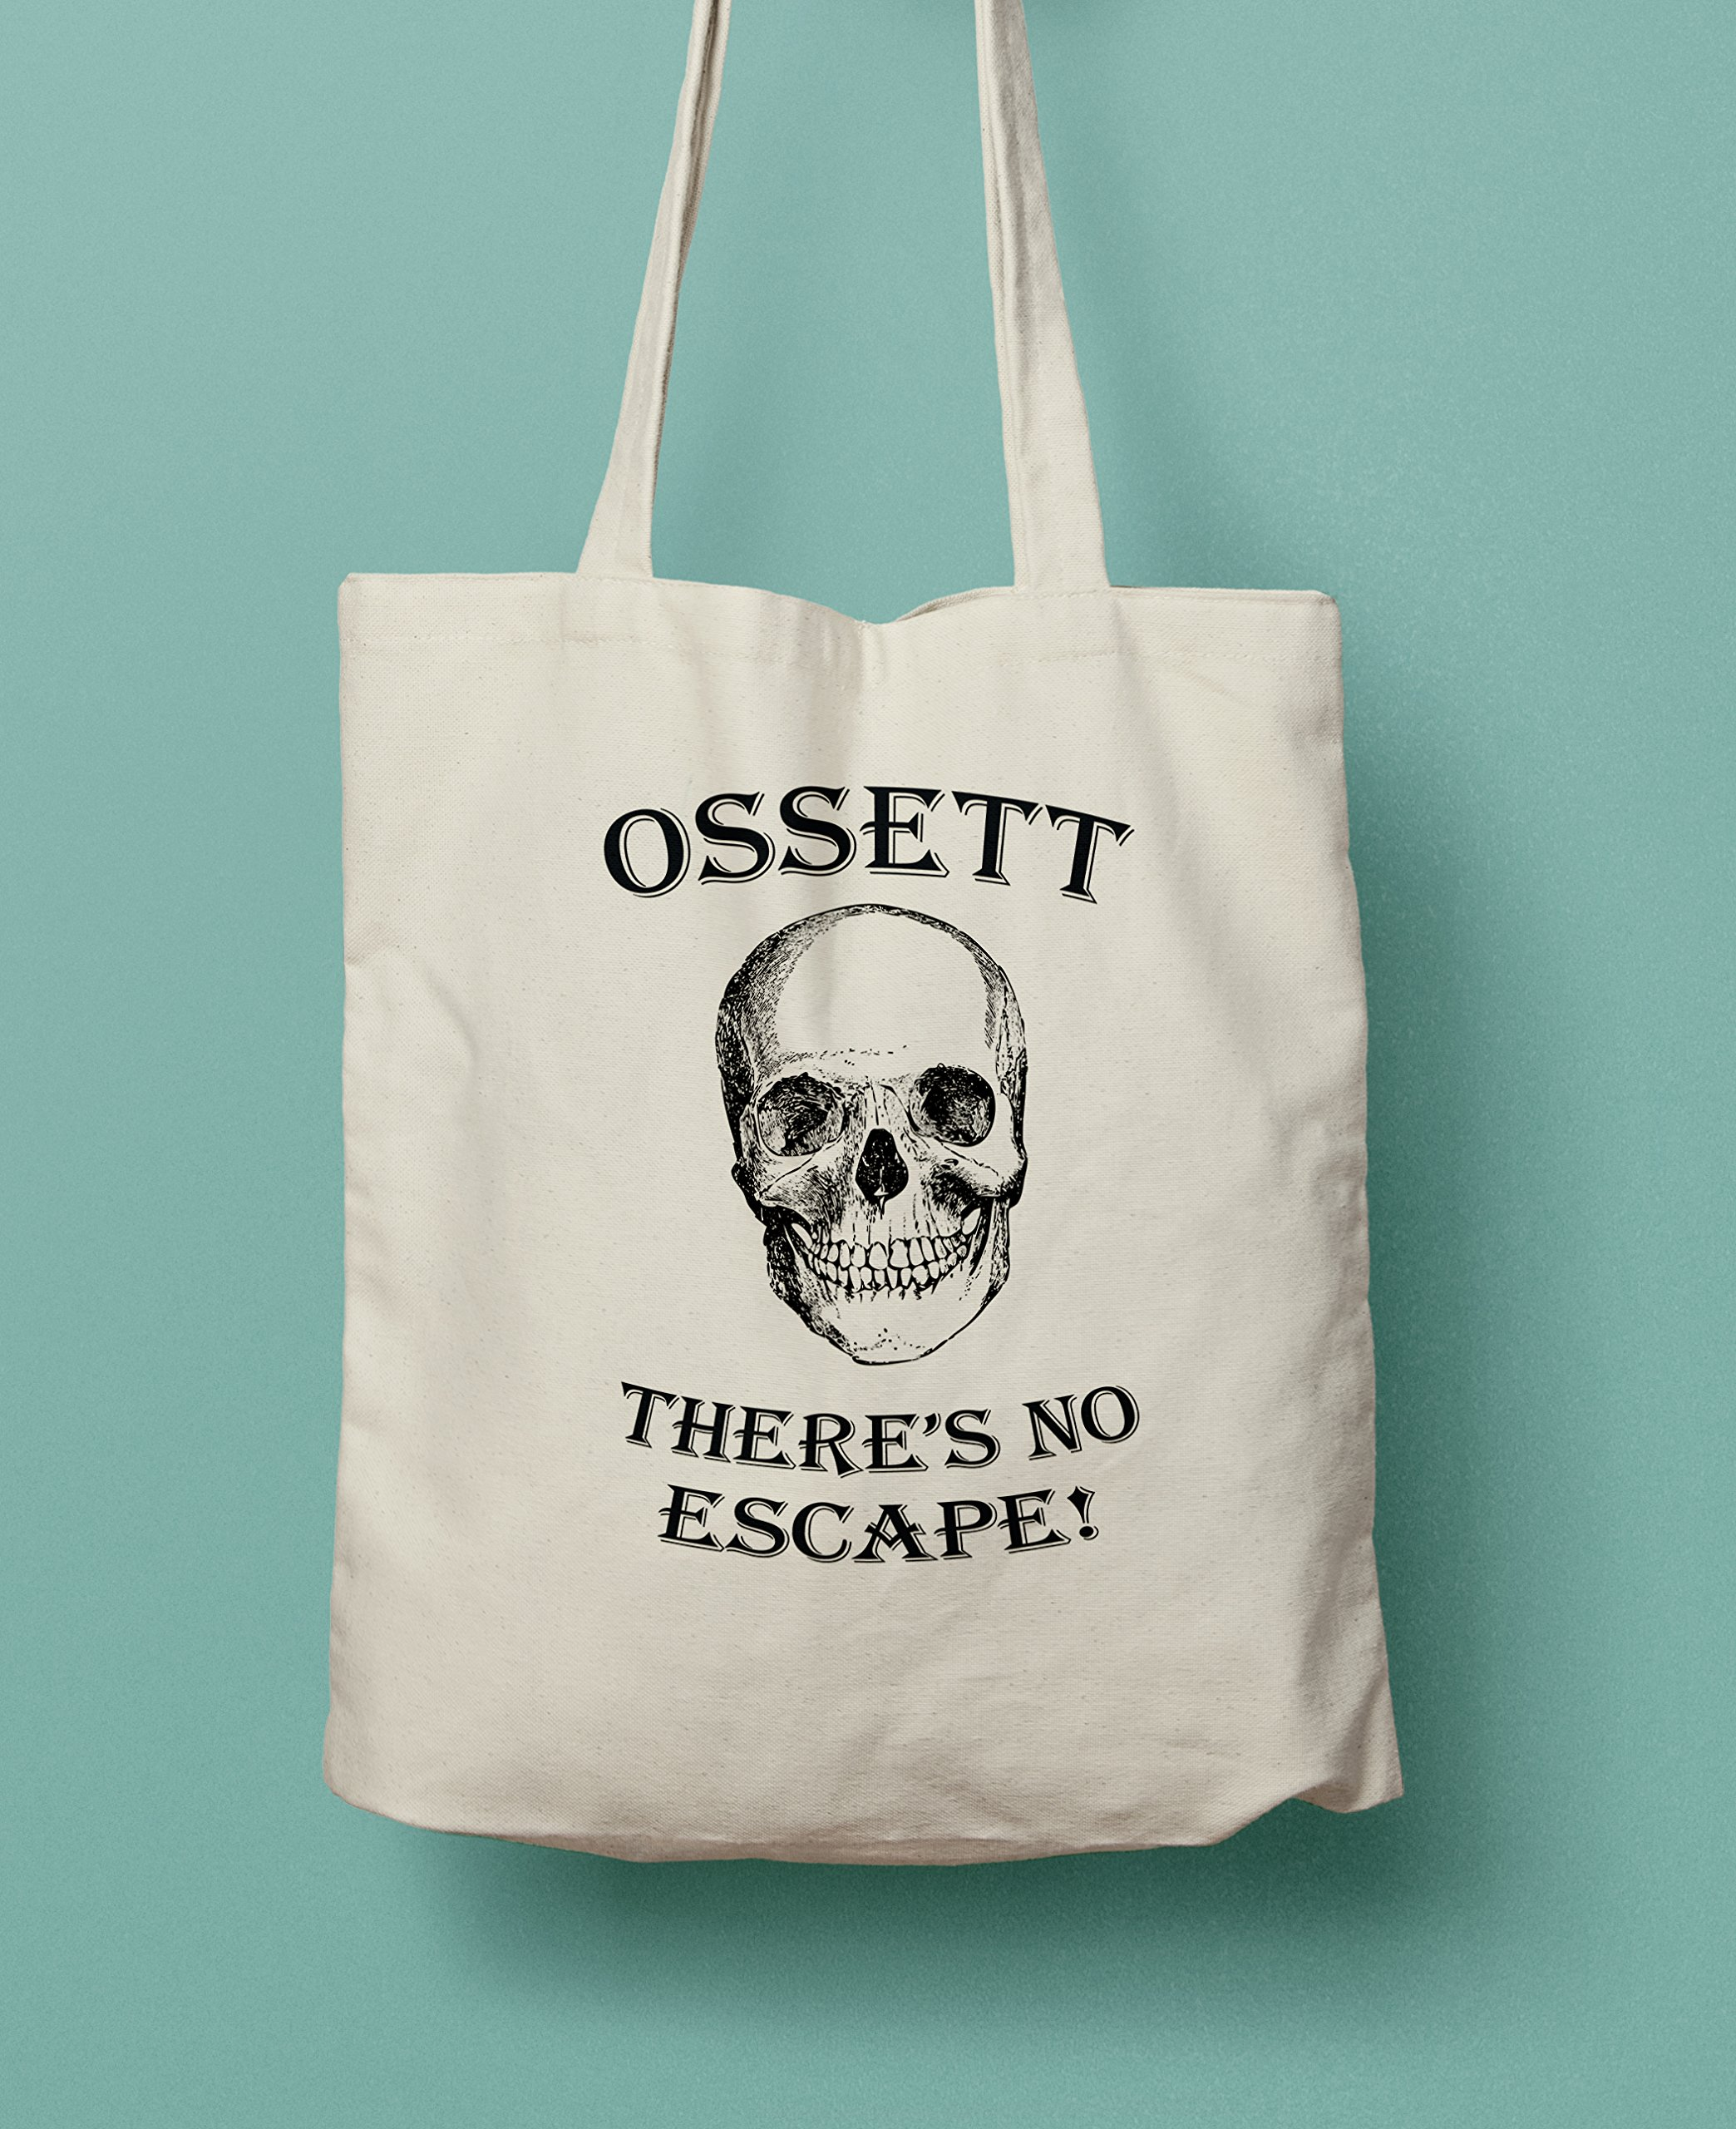 Ossett There's No Escape! Shopping Tote Bag - handmade-bags